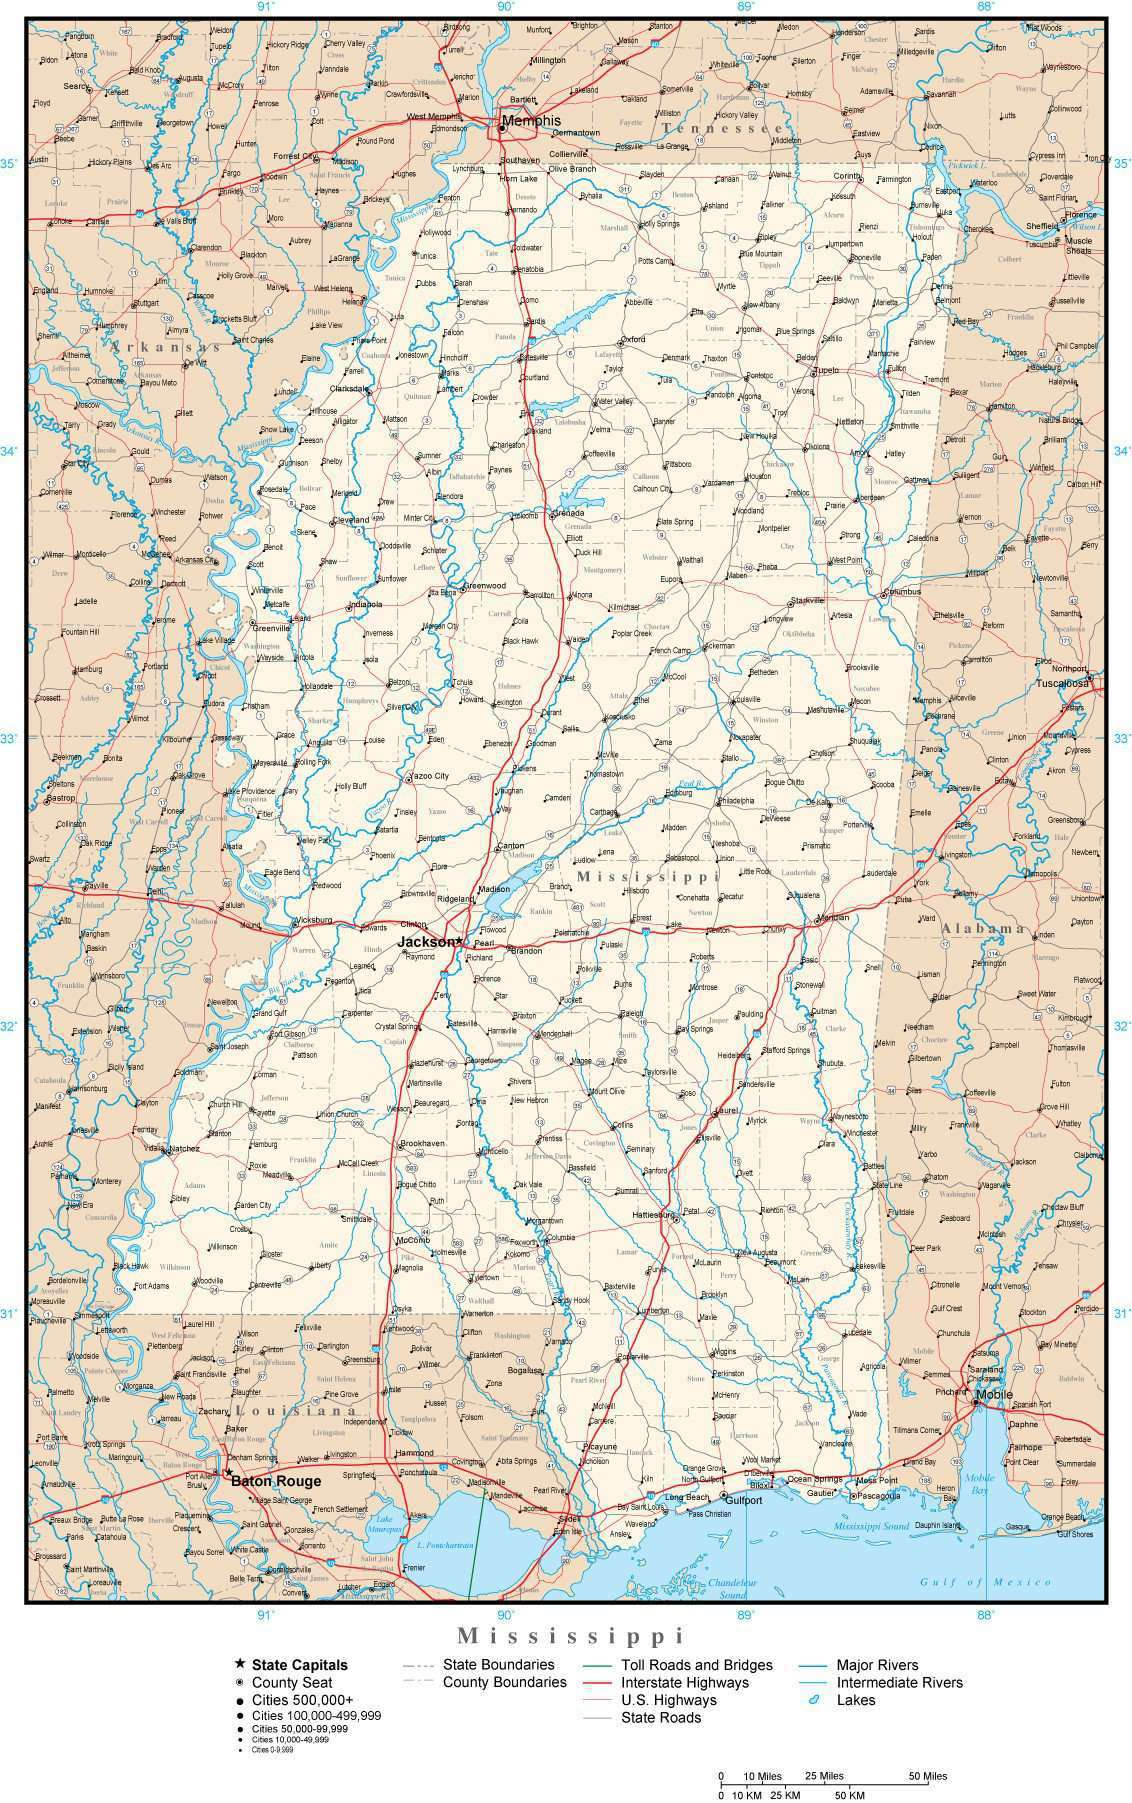 Cities In Ms >> Mississippi Map With Capital County Boundaries Cities Roads And Water Features